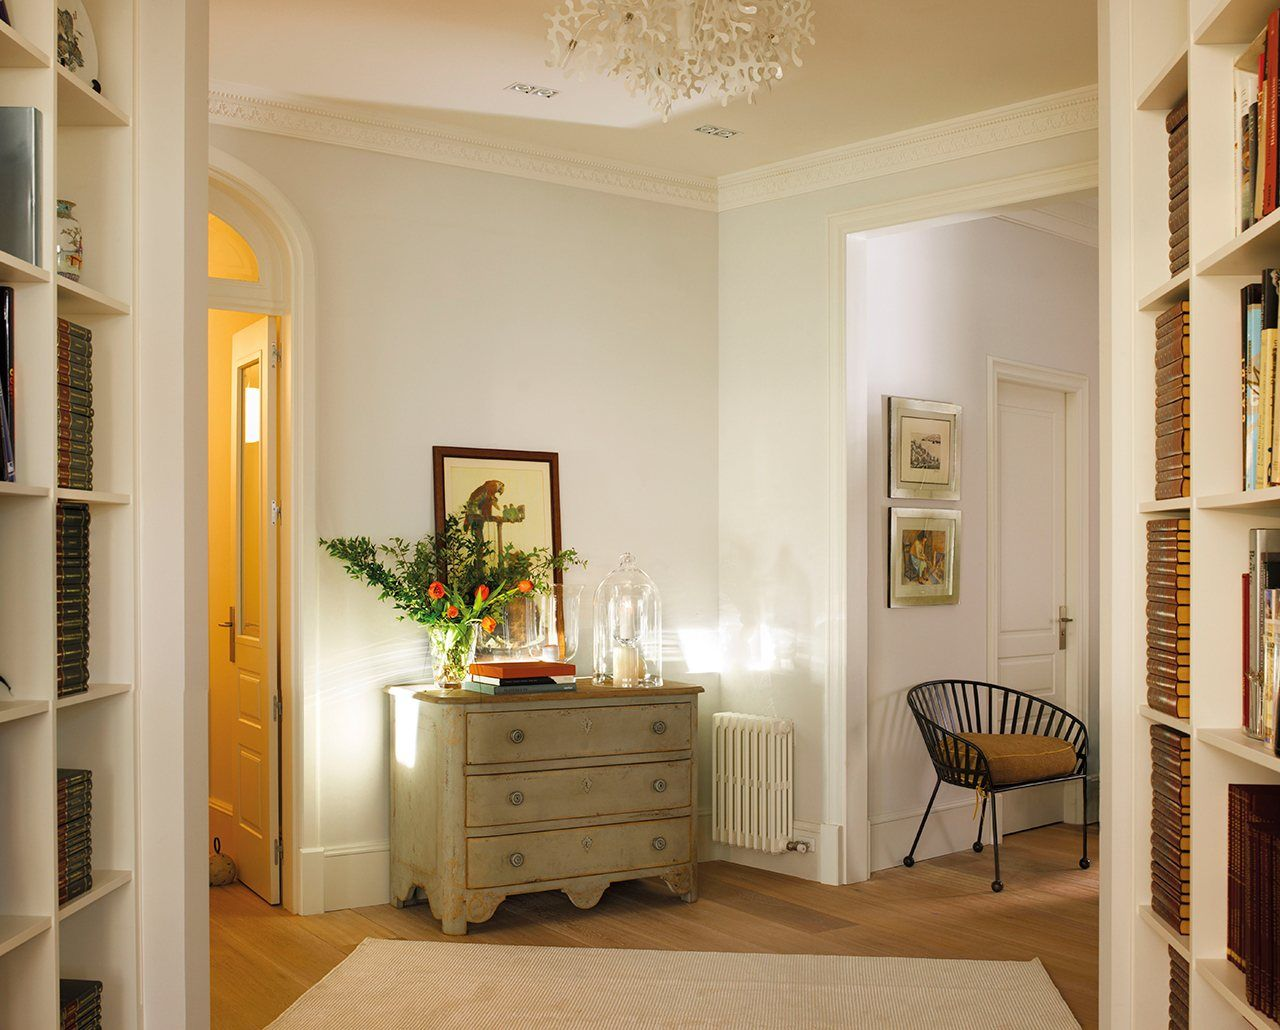 Simplicity with classic & eclectic style | Decorating Ideas: Elegant ...